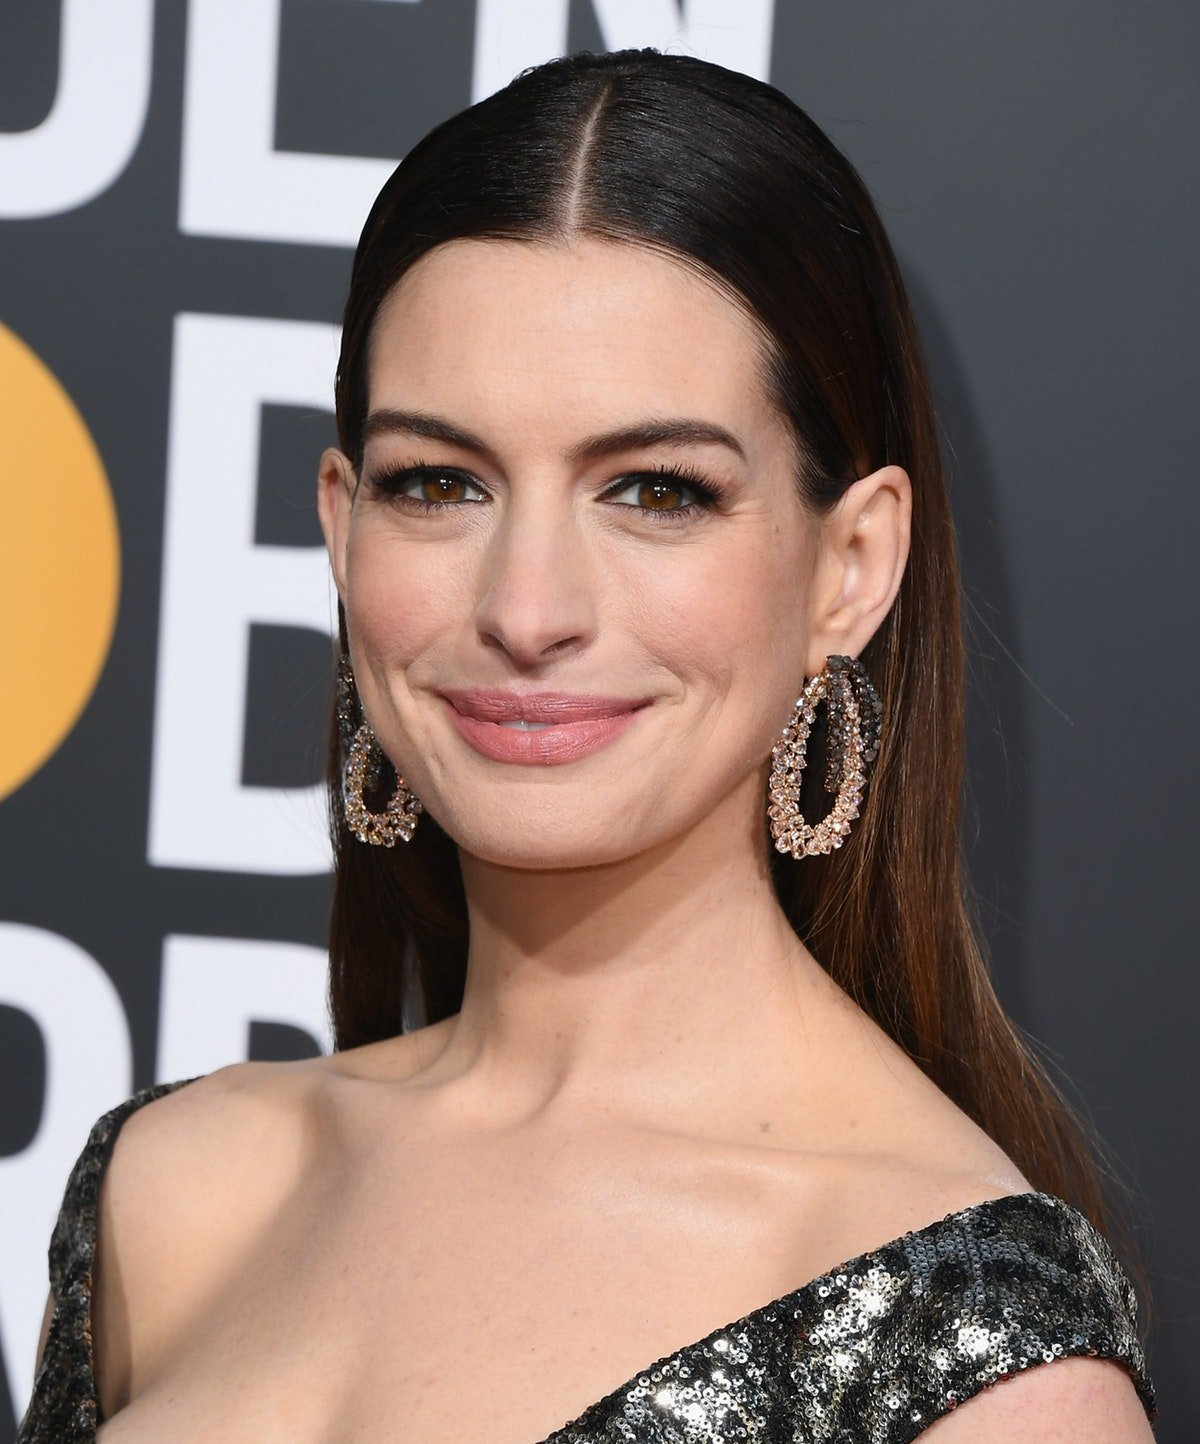 Anne Hathaway Is Giving Up Drinking For 18 Years For This Sweet Reason